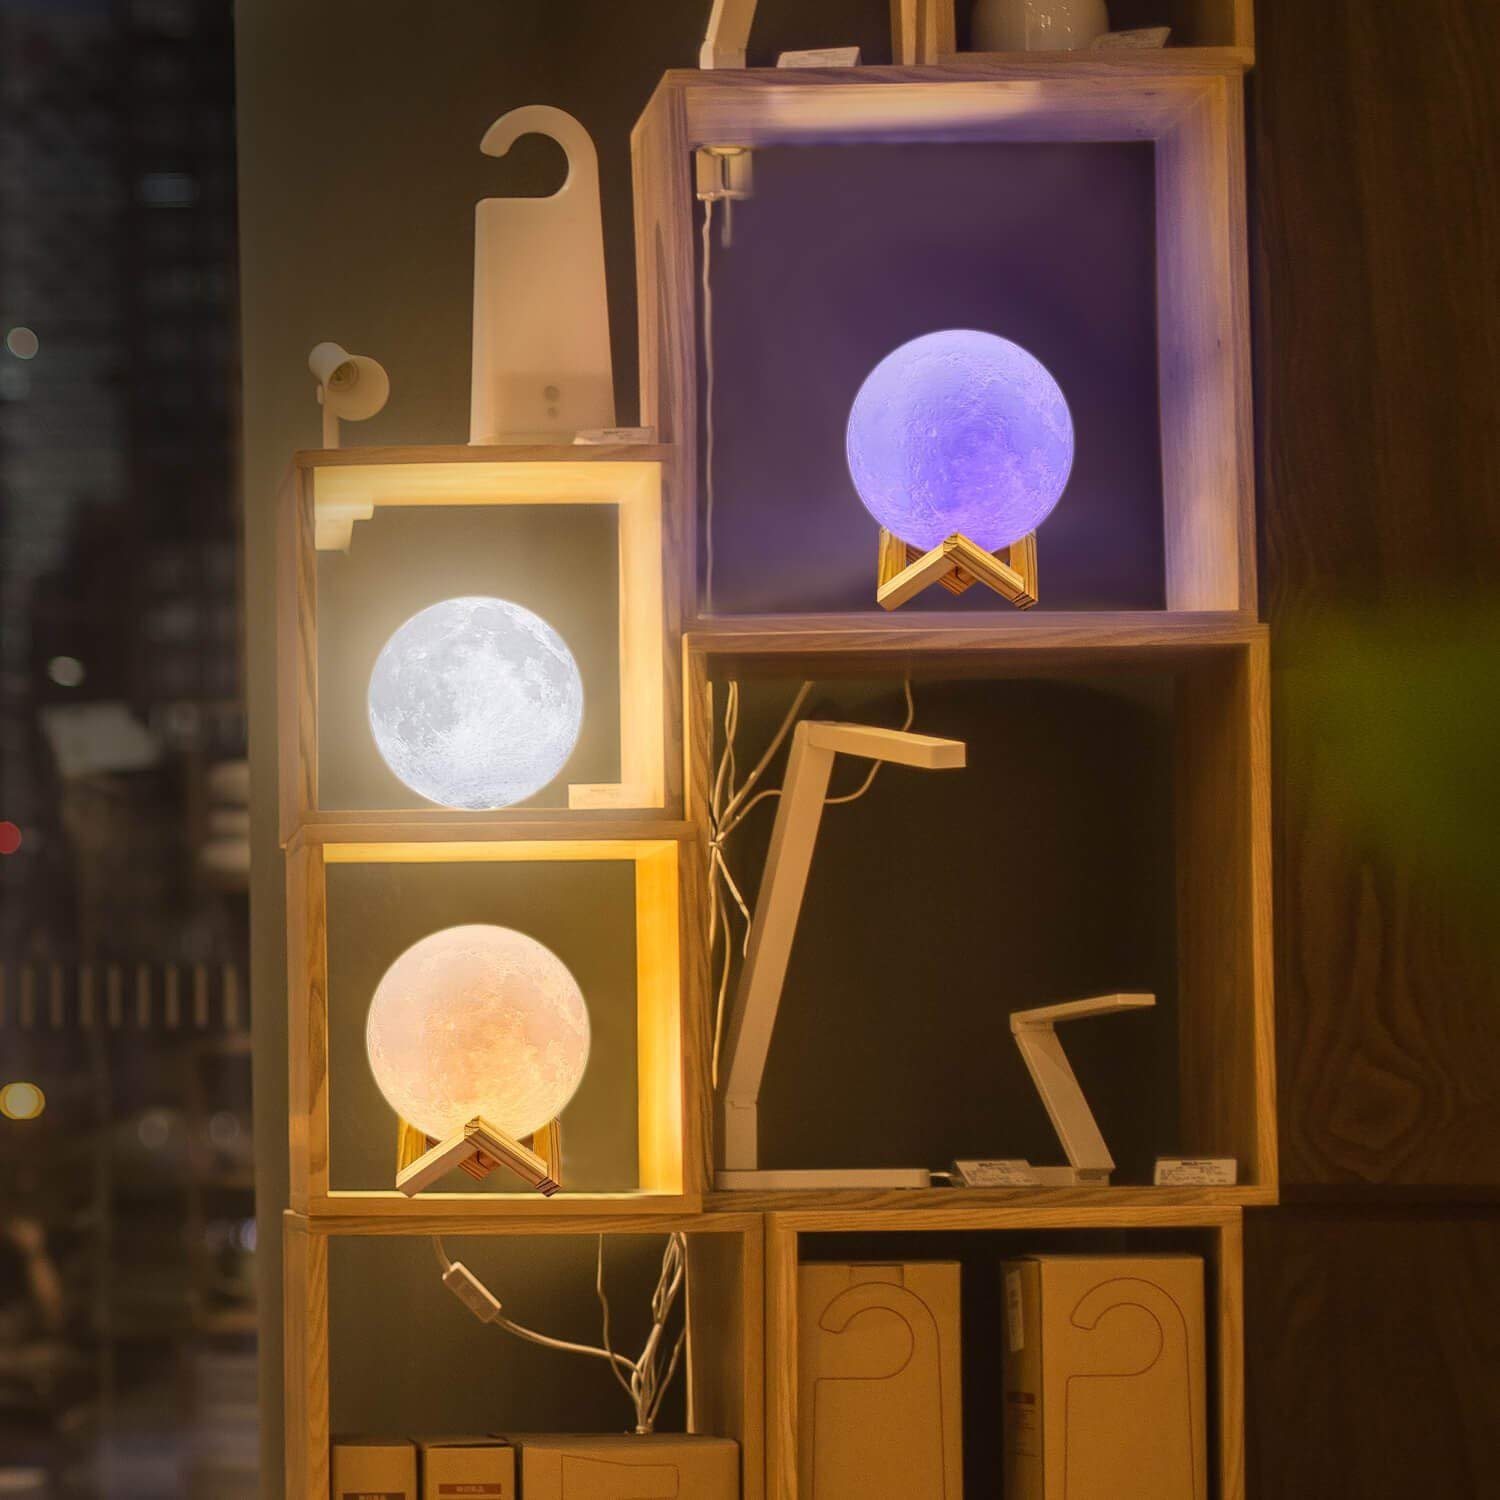 unique gift ideas Amazon moon lamp cool lamp sun light for people scared of the dark